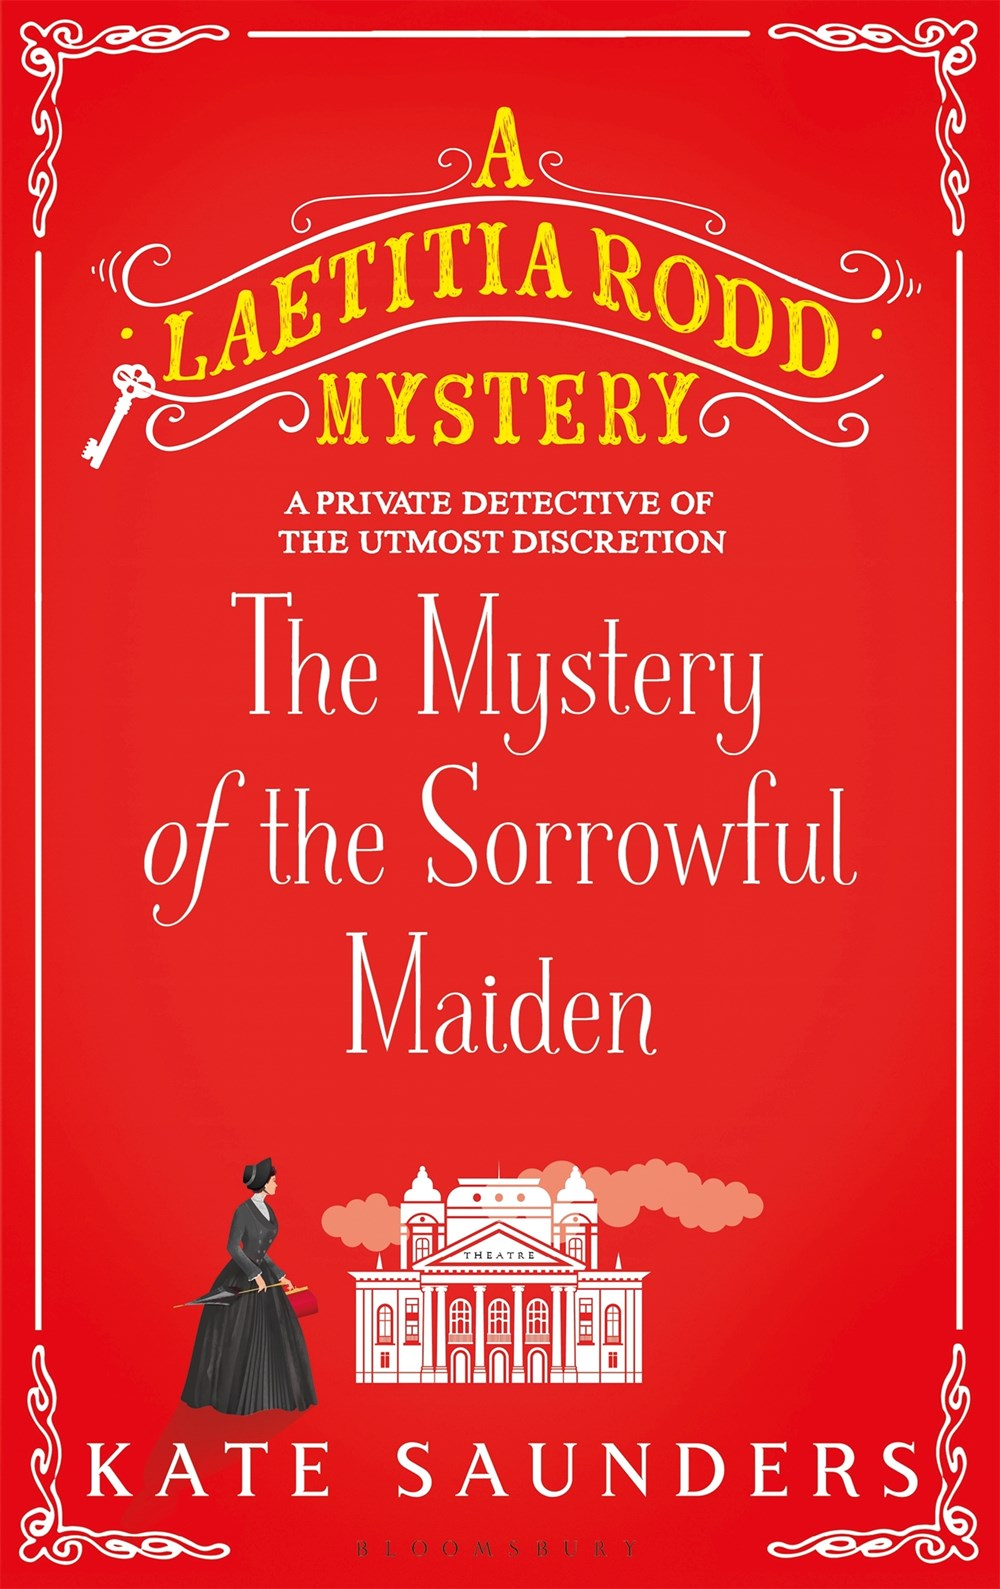 The Mystery of the Sorrowful Maiden (A Laetitia Rodd Mystery, #3)